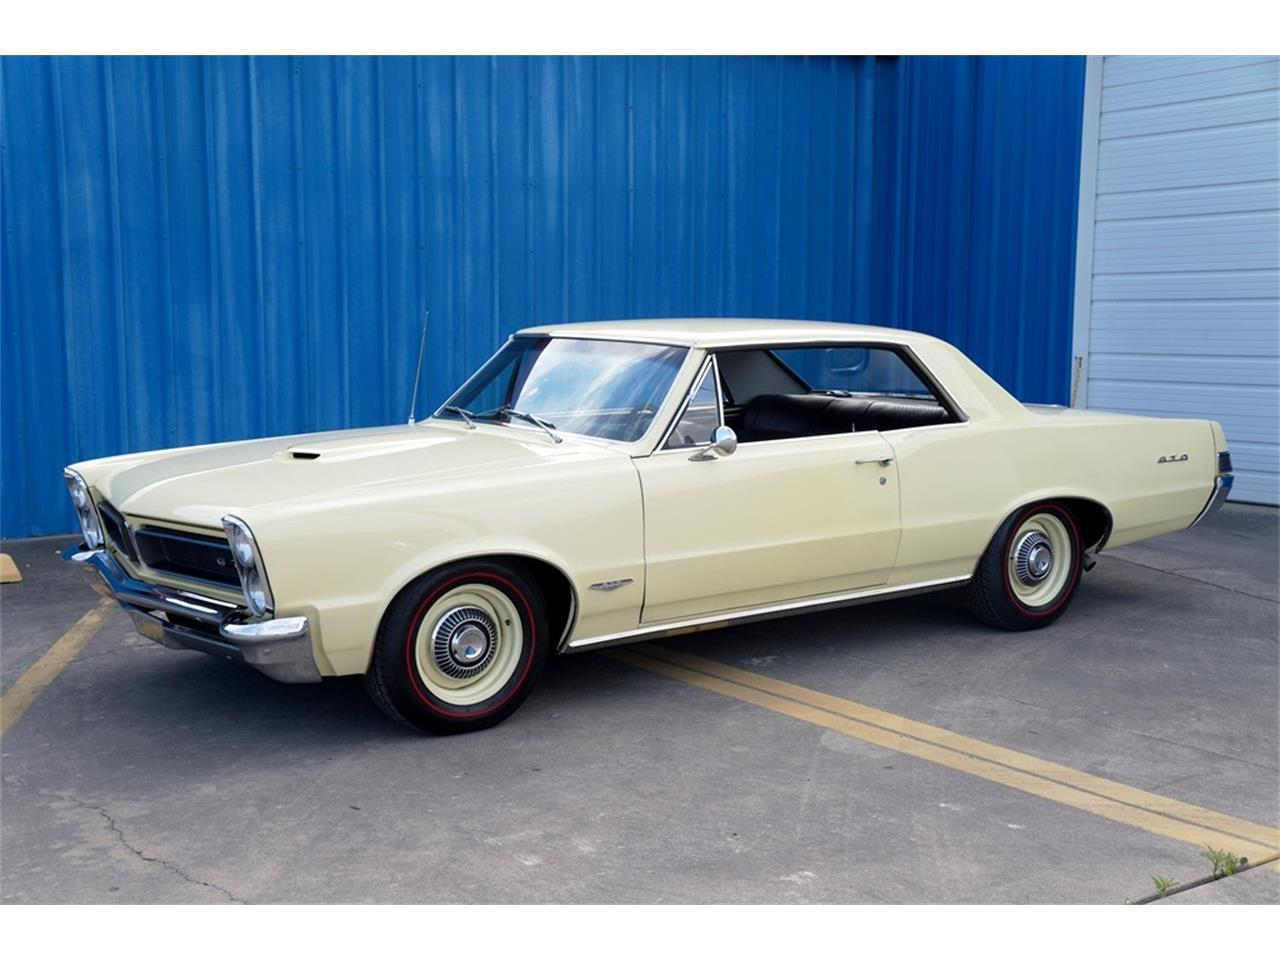 Large Picture of Classic '65 Pontiac GTO Offered by A&E Classic Cars - PWOM